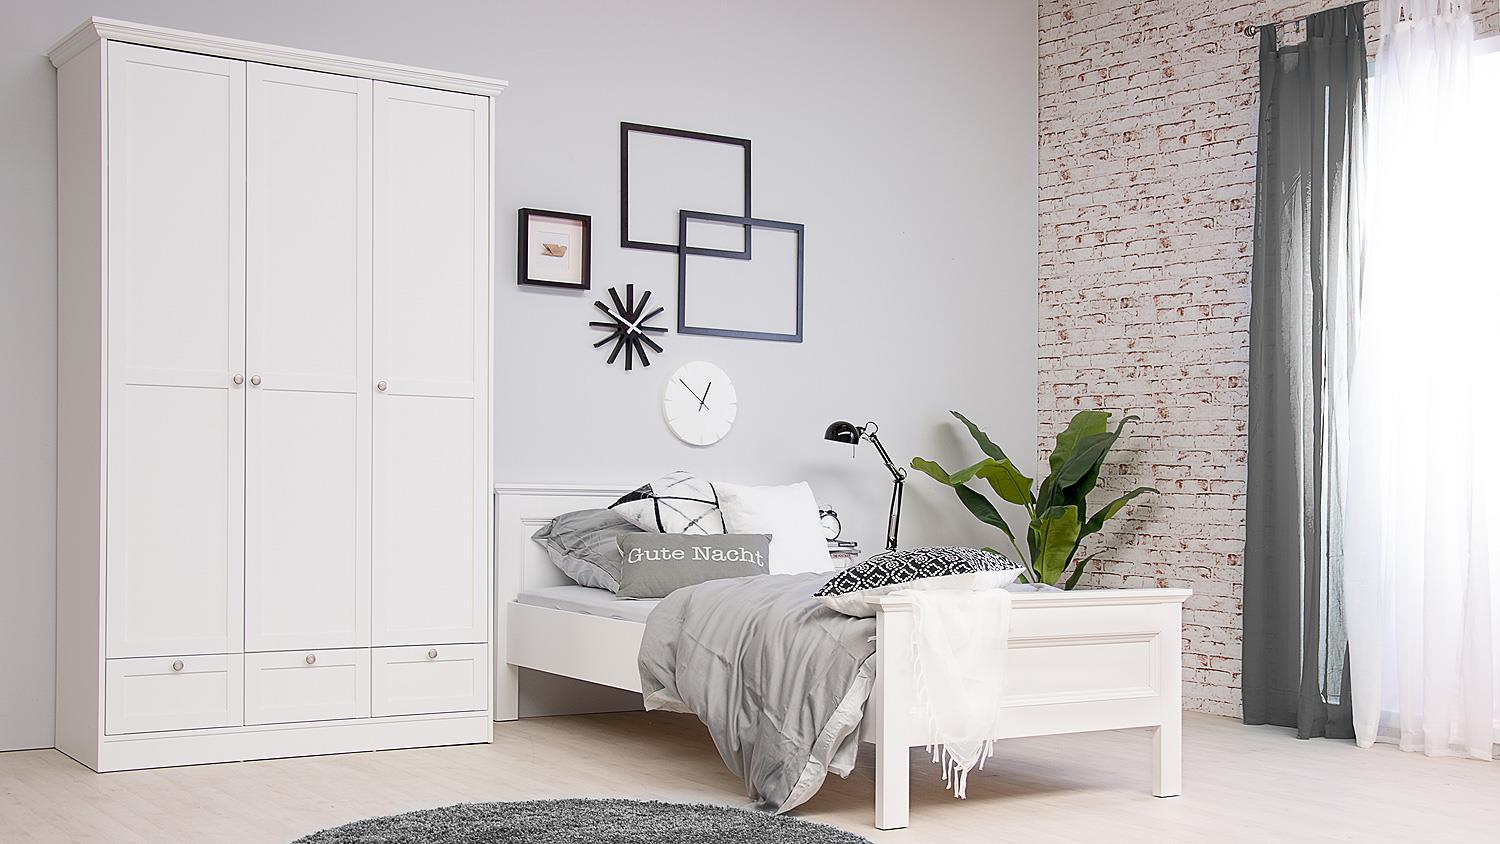 bett landwood bettgestell in wei mit kopfteil 90x200 cm landhausstil. Black Bedroom Furniture Sets. Home Design Ideas